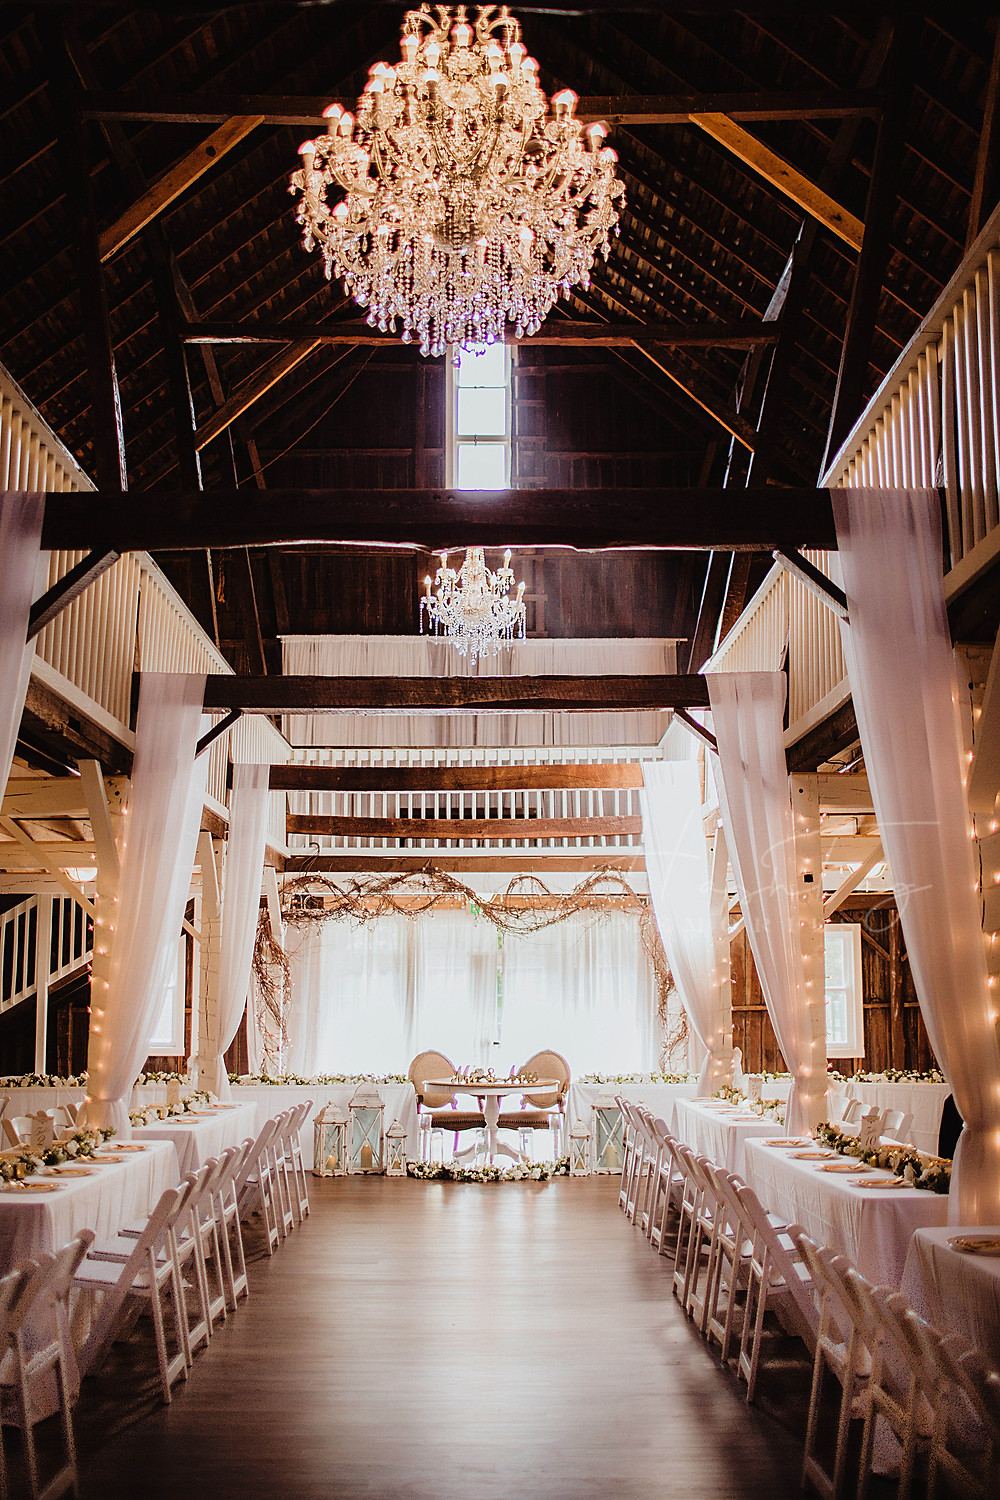 classy barn wedding venue in indiana for midwest brides with big crystal chandeliers